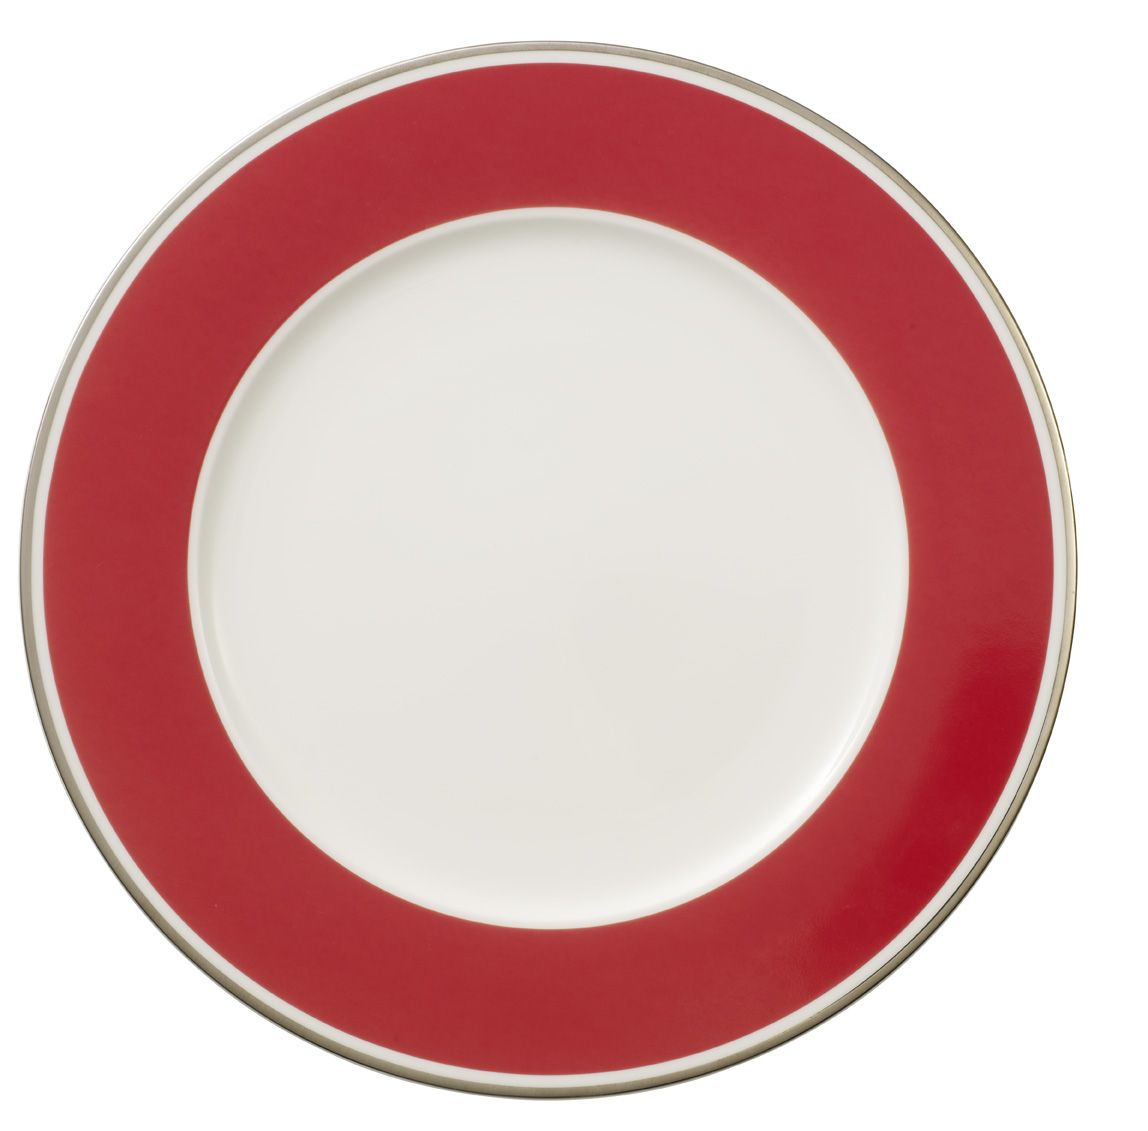 Anmut red cherry buffet plate 30cm